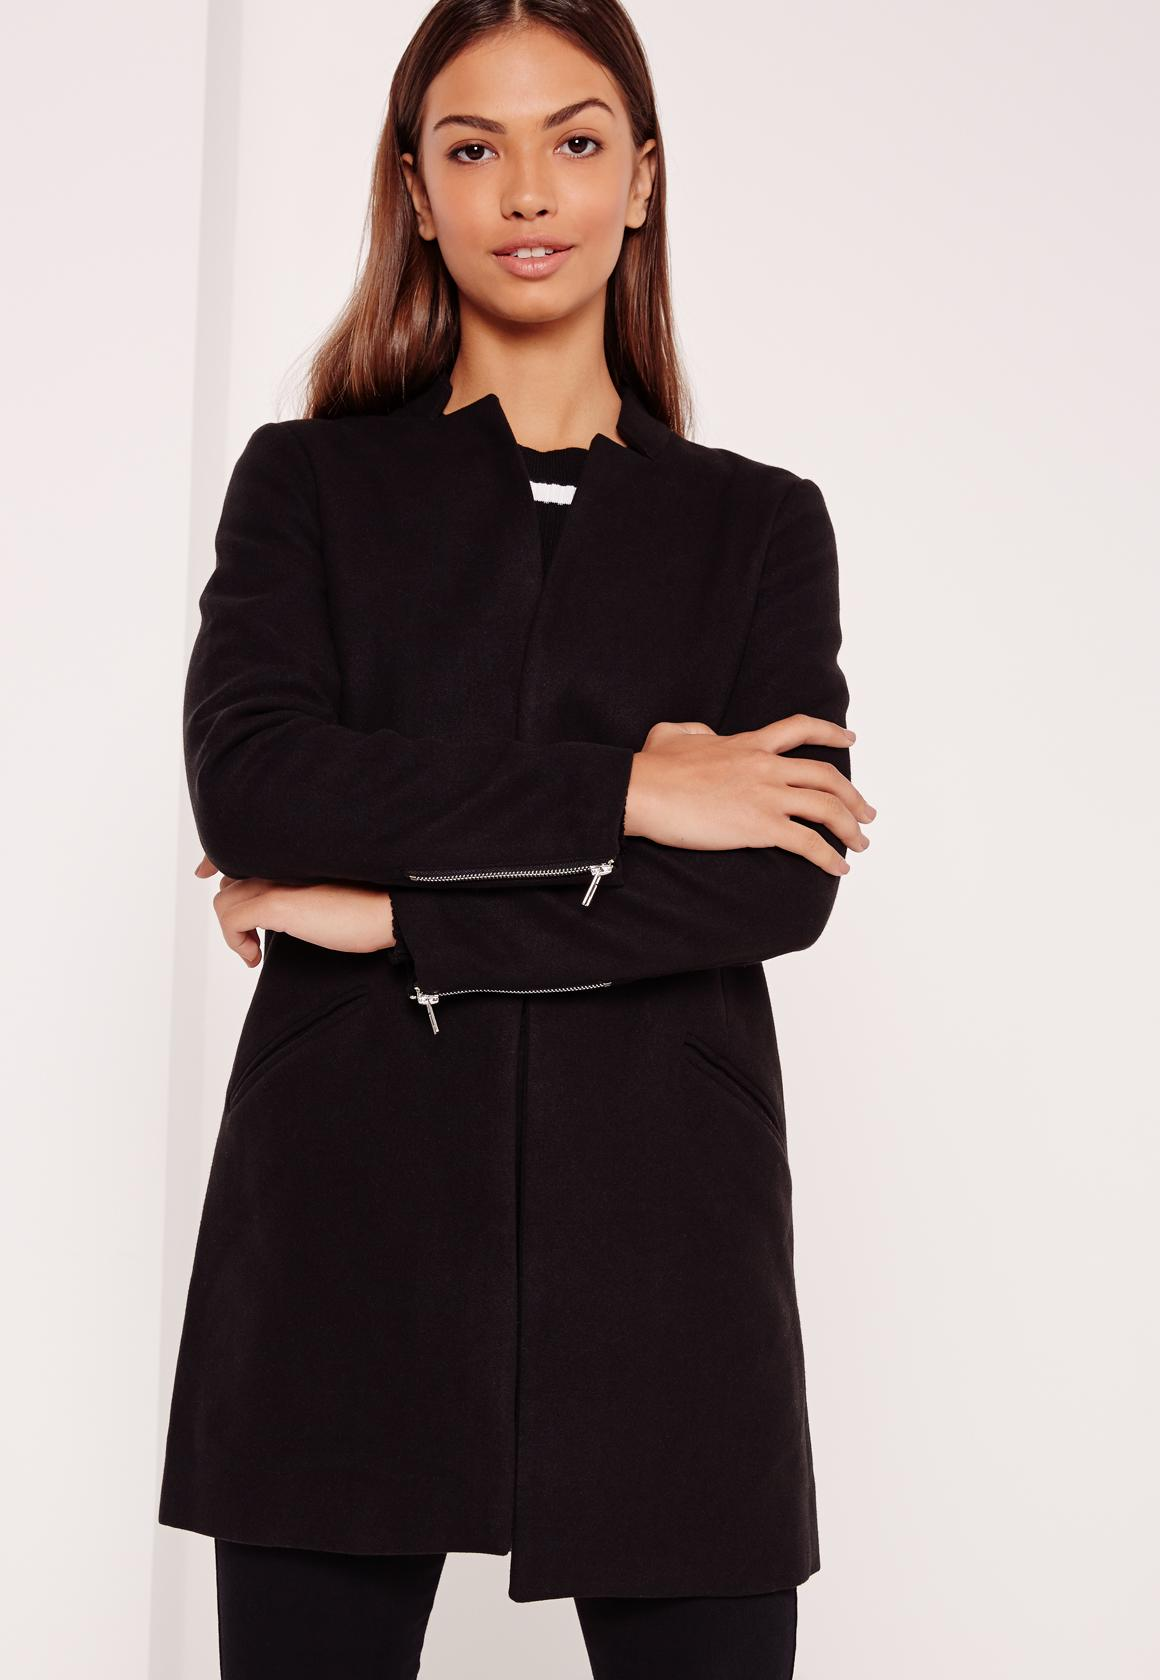 Tailored Inverted Collar Coat Black - Missguided